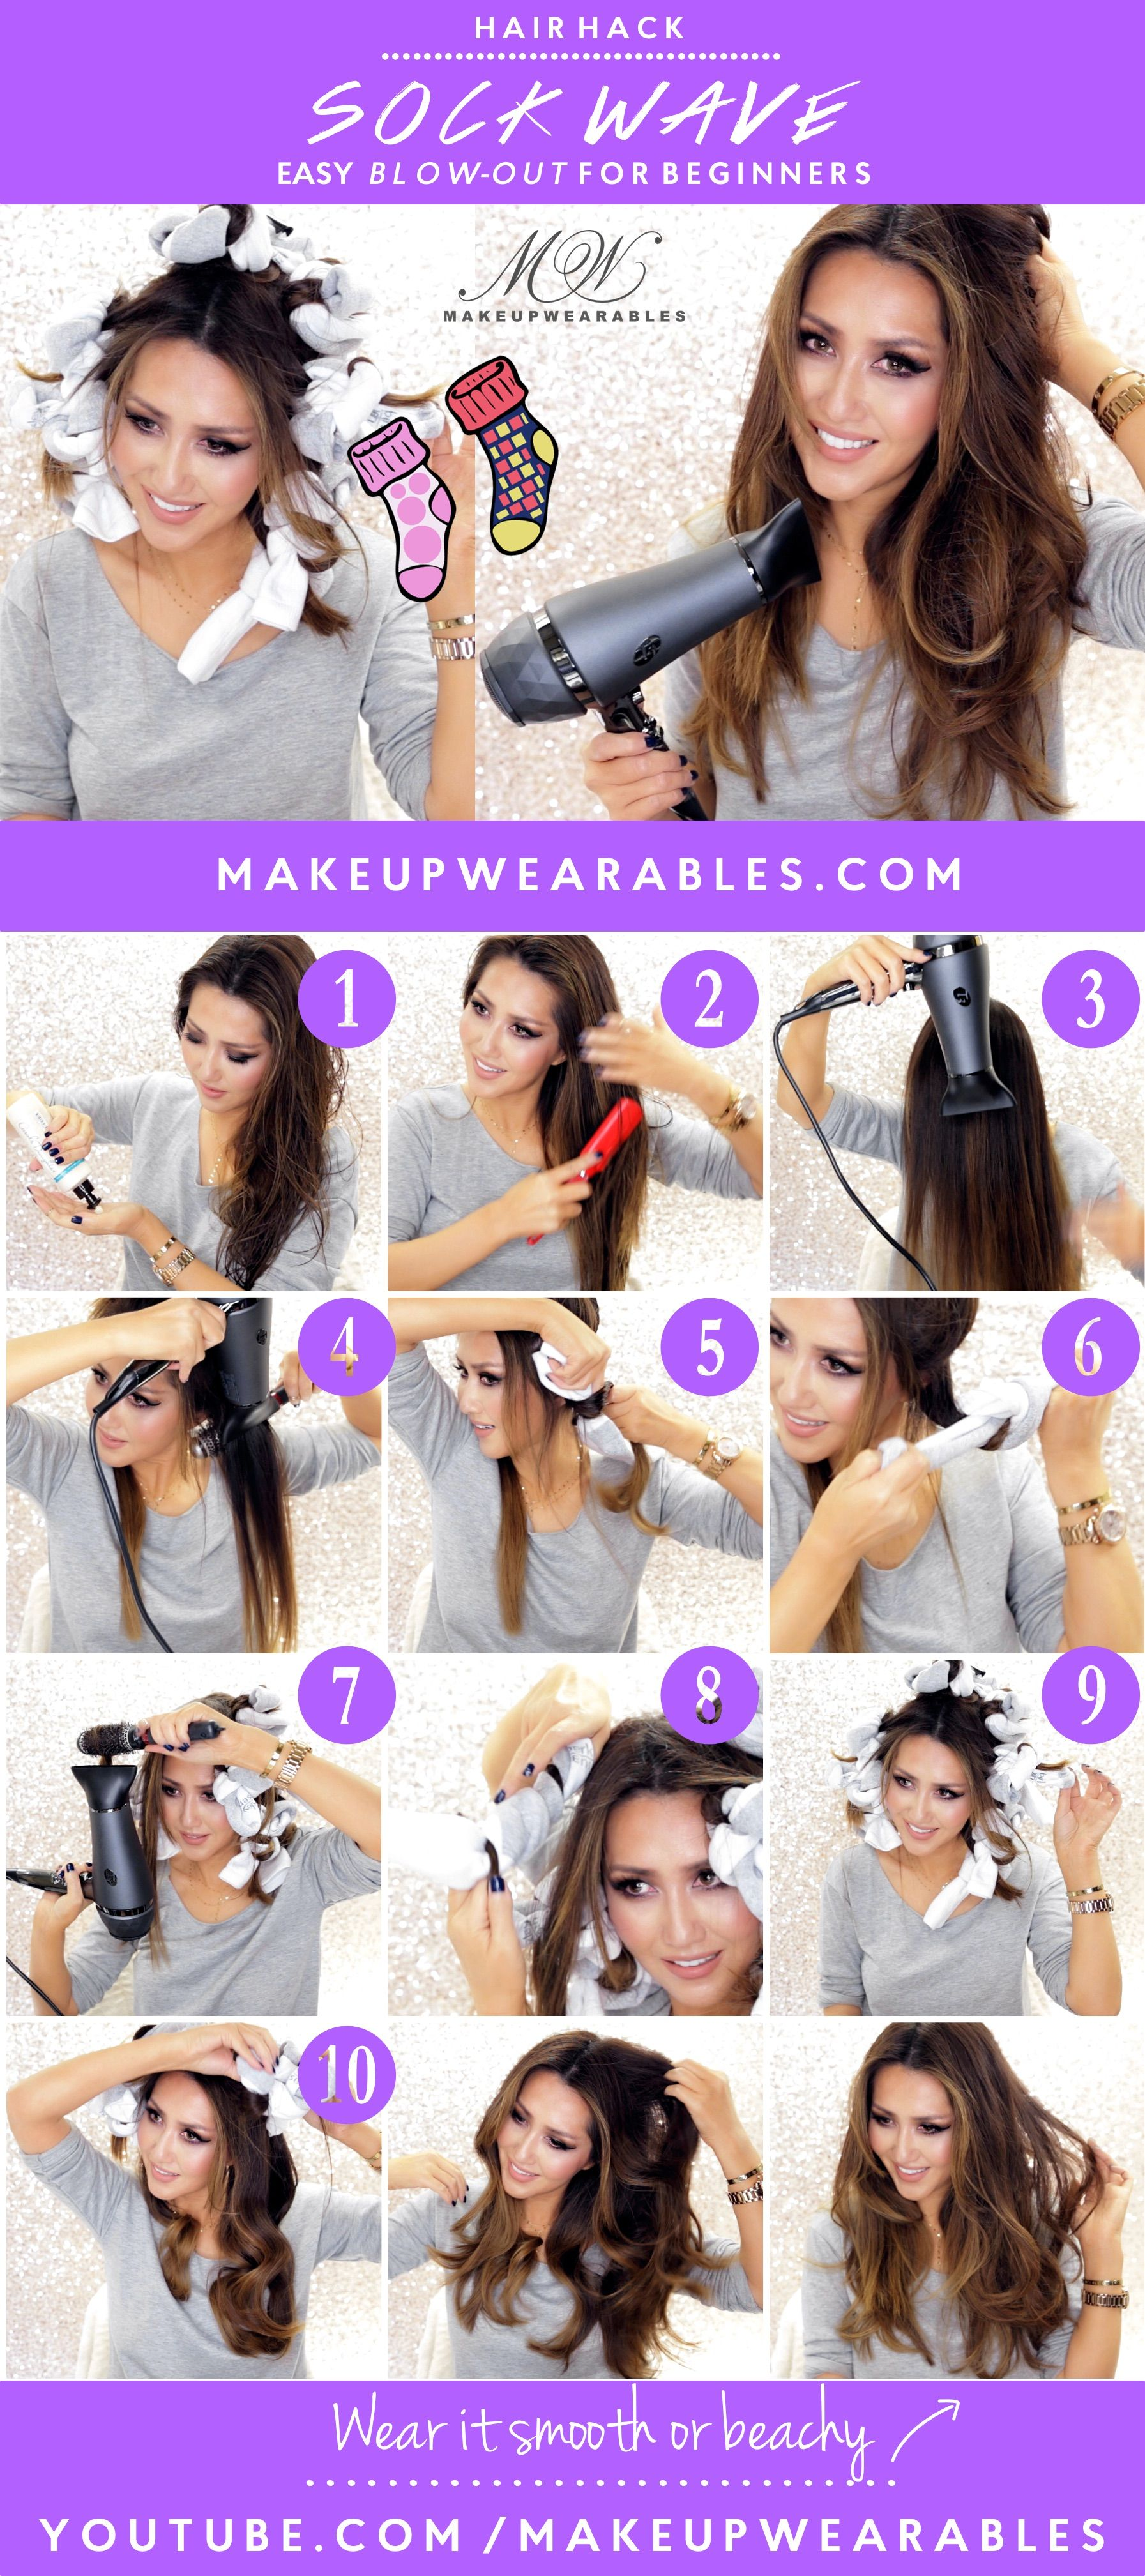 Hair Hack Curl your hair with socks & a blowdryer hairstyles